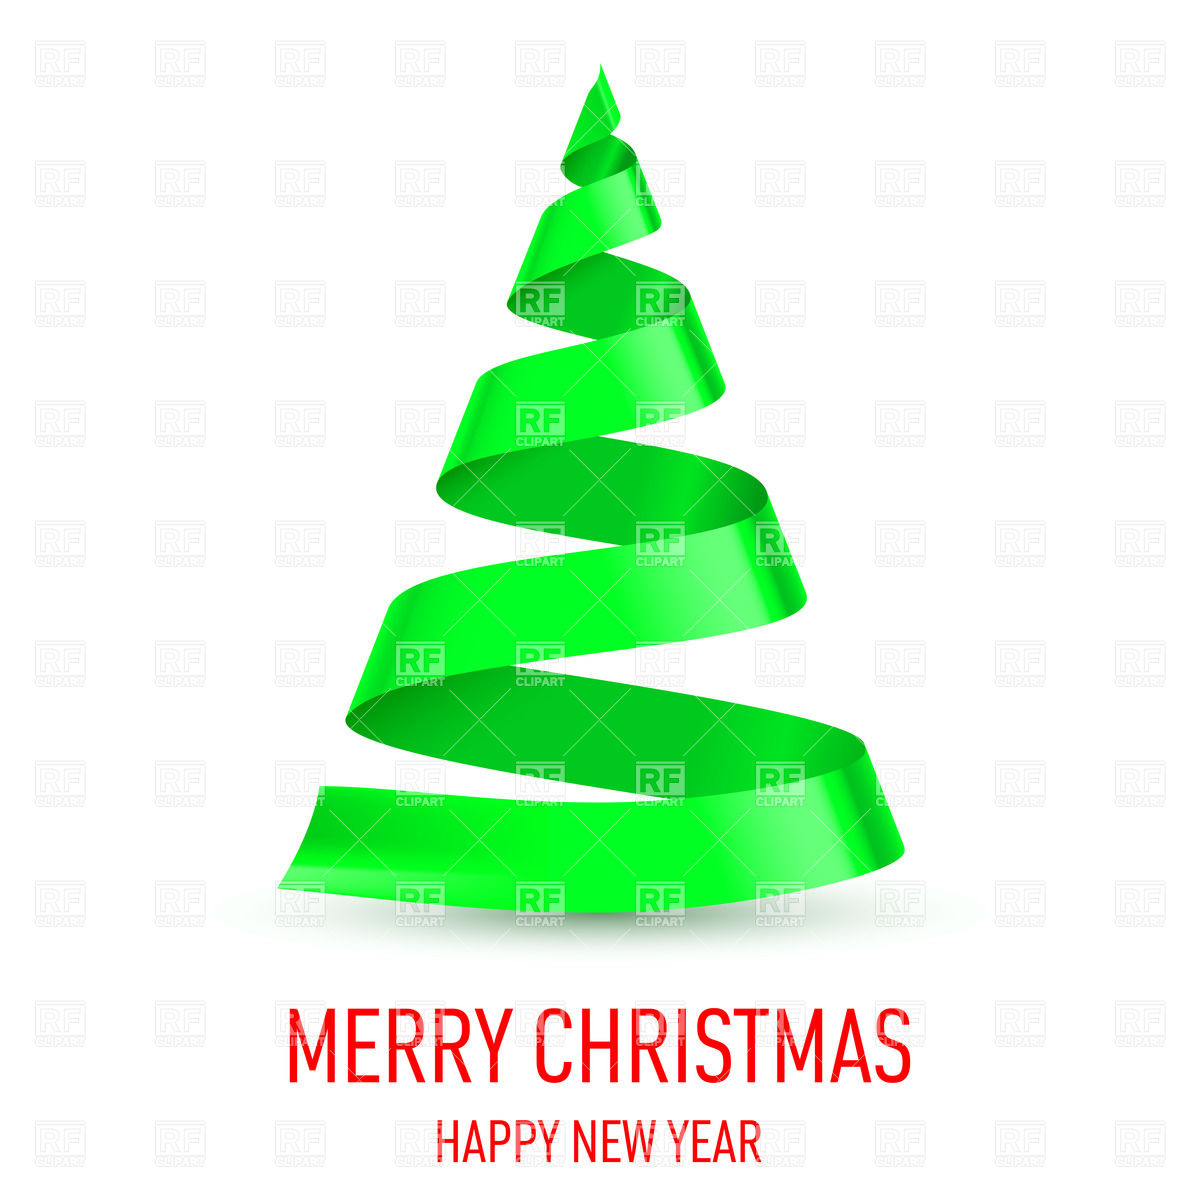 16 Christmas Tree Ribbon Vector Free Images